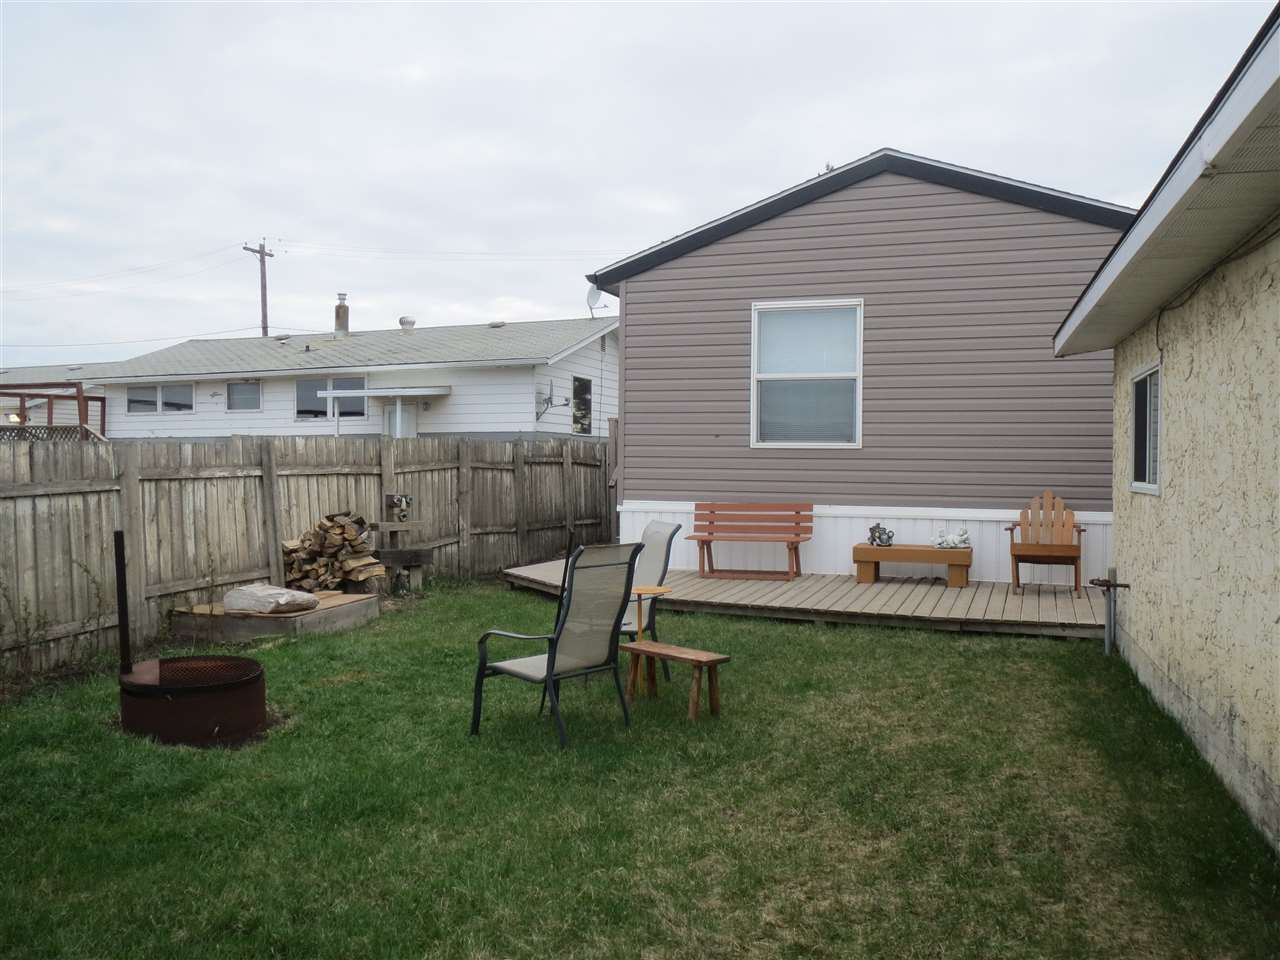 Three bedroom mobile. Fenced backyard with shed. Master bedrooms with 5 piece ensuite and walk in closet. Big Kitchen with island and corner pantry. Vaulted high ceilings. Hot water on demand. School bus to either Beaumont or Leduc.